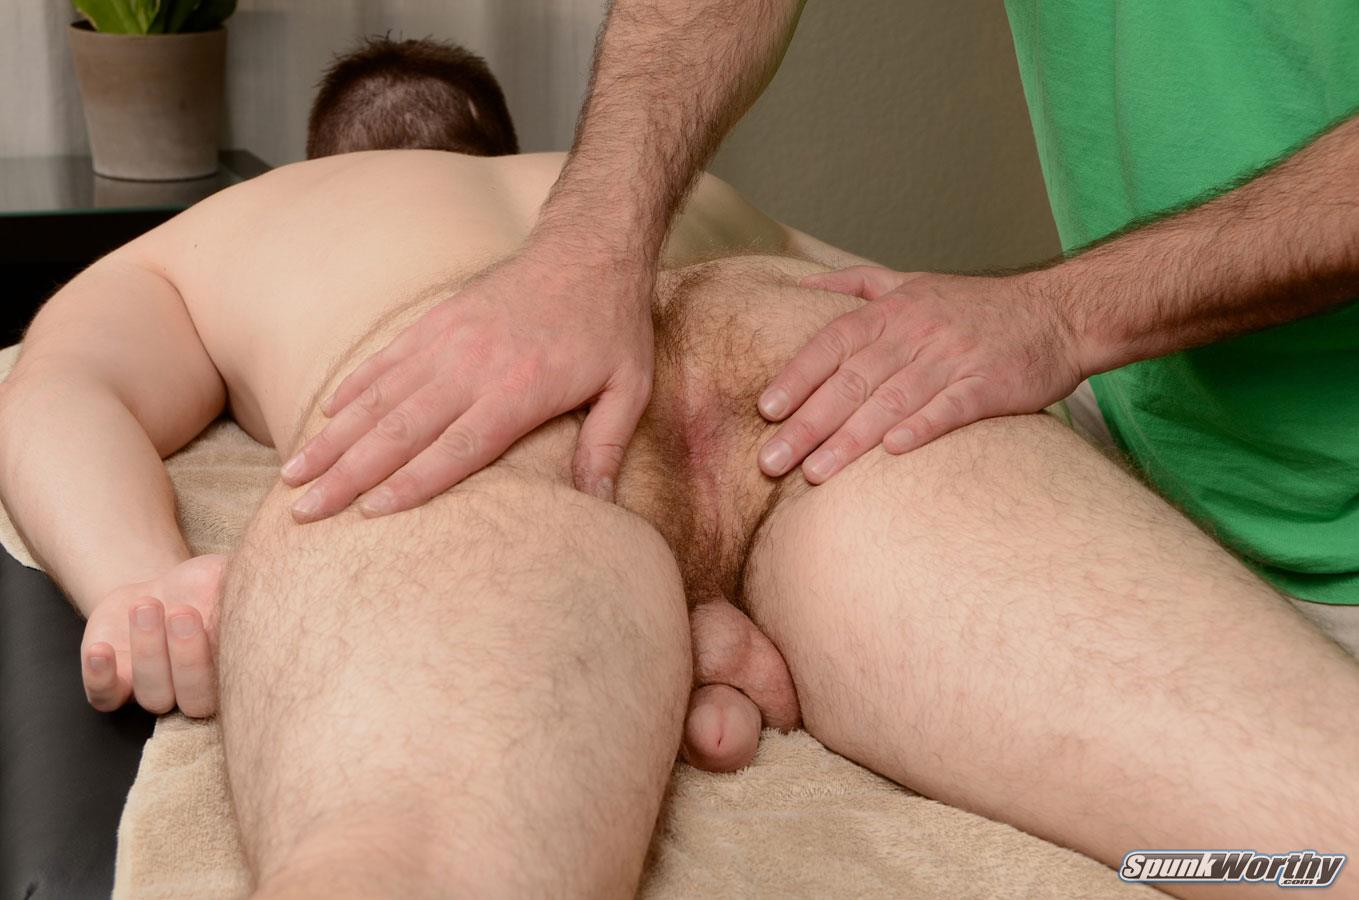 Ass boys massage gay collin exposes the 9